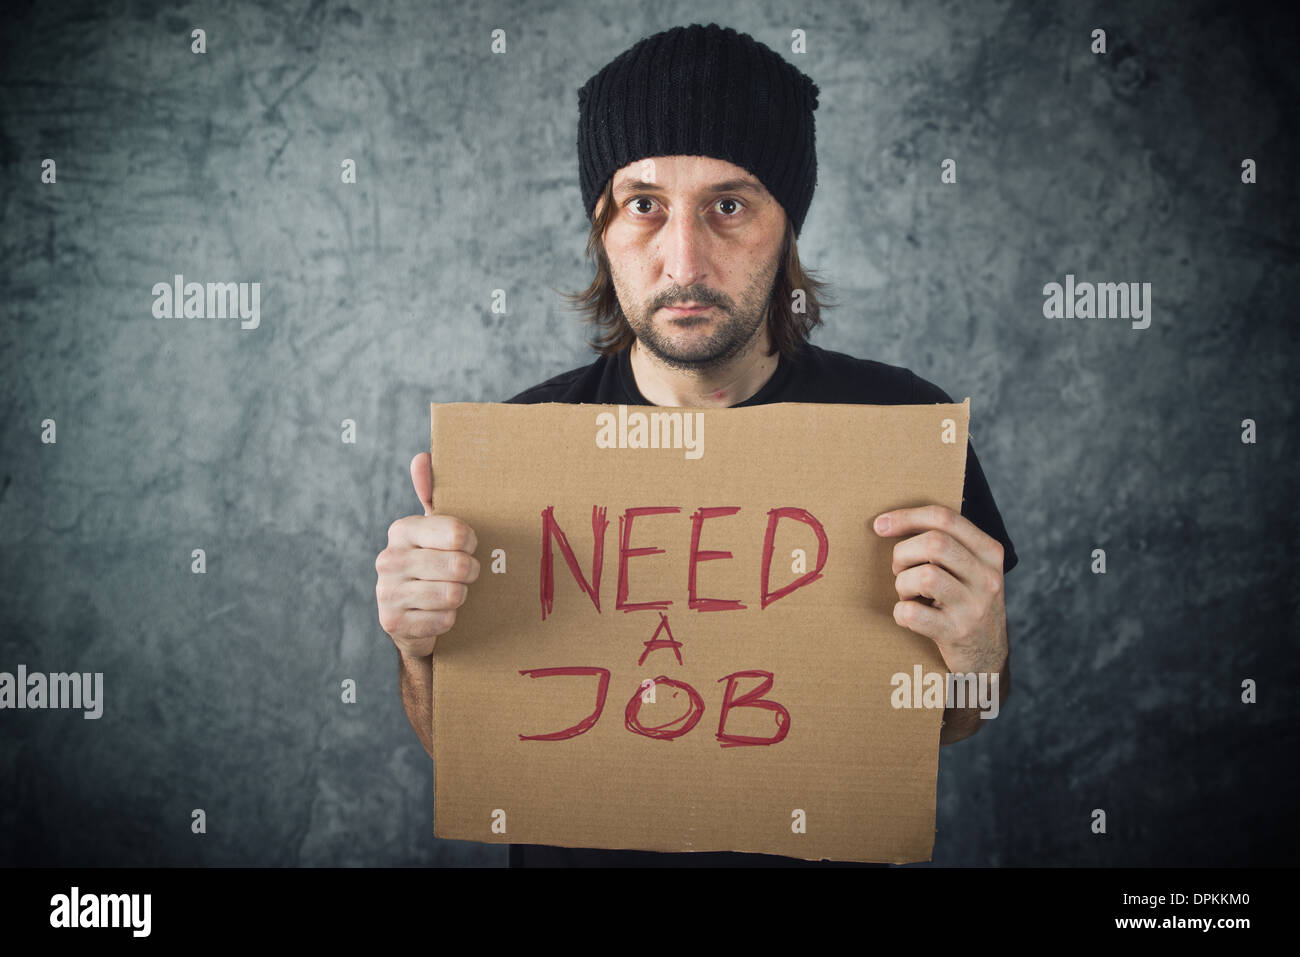 Man holding cardboard paper with Need a Job message. Job seeking, unemployment issues. - Stock Image